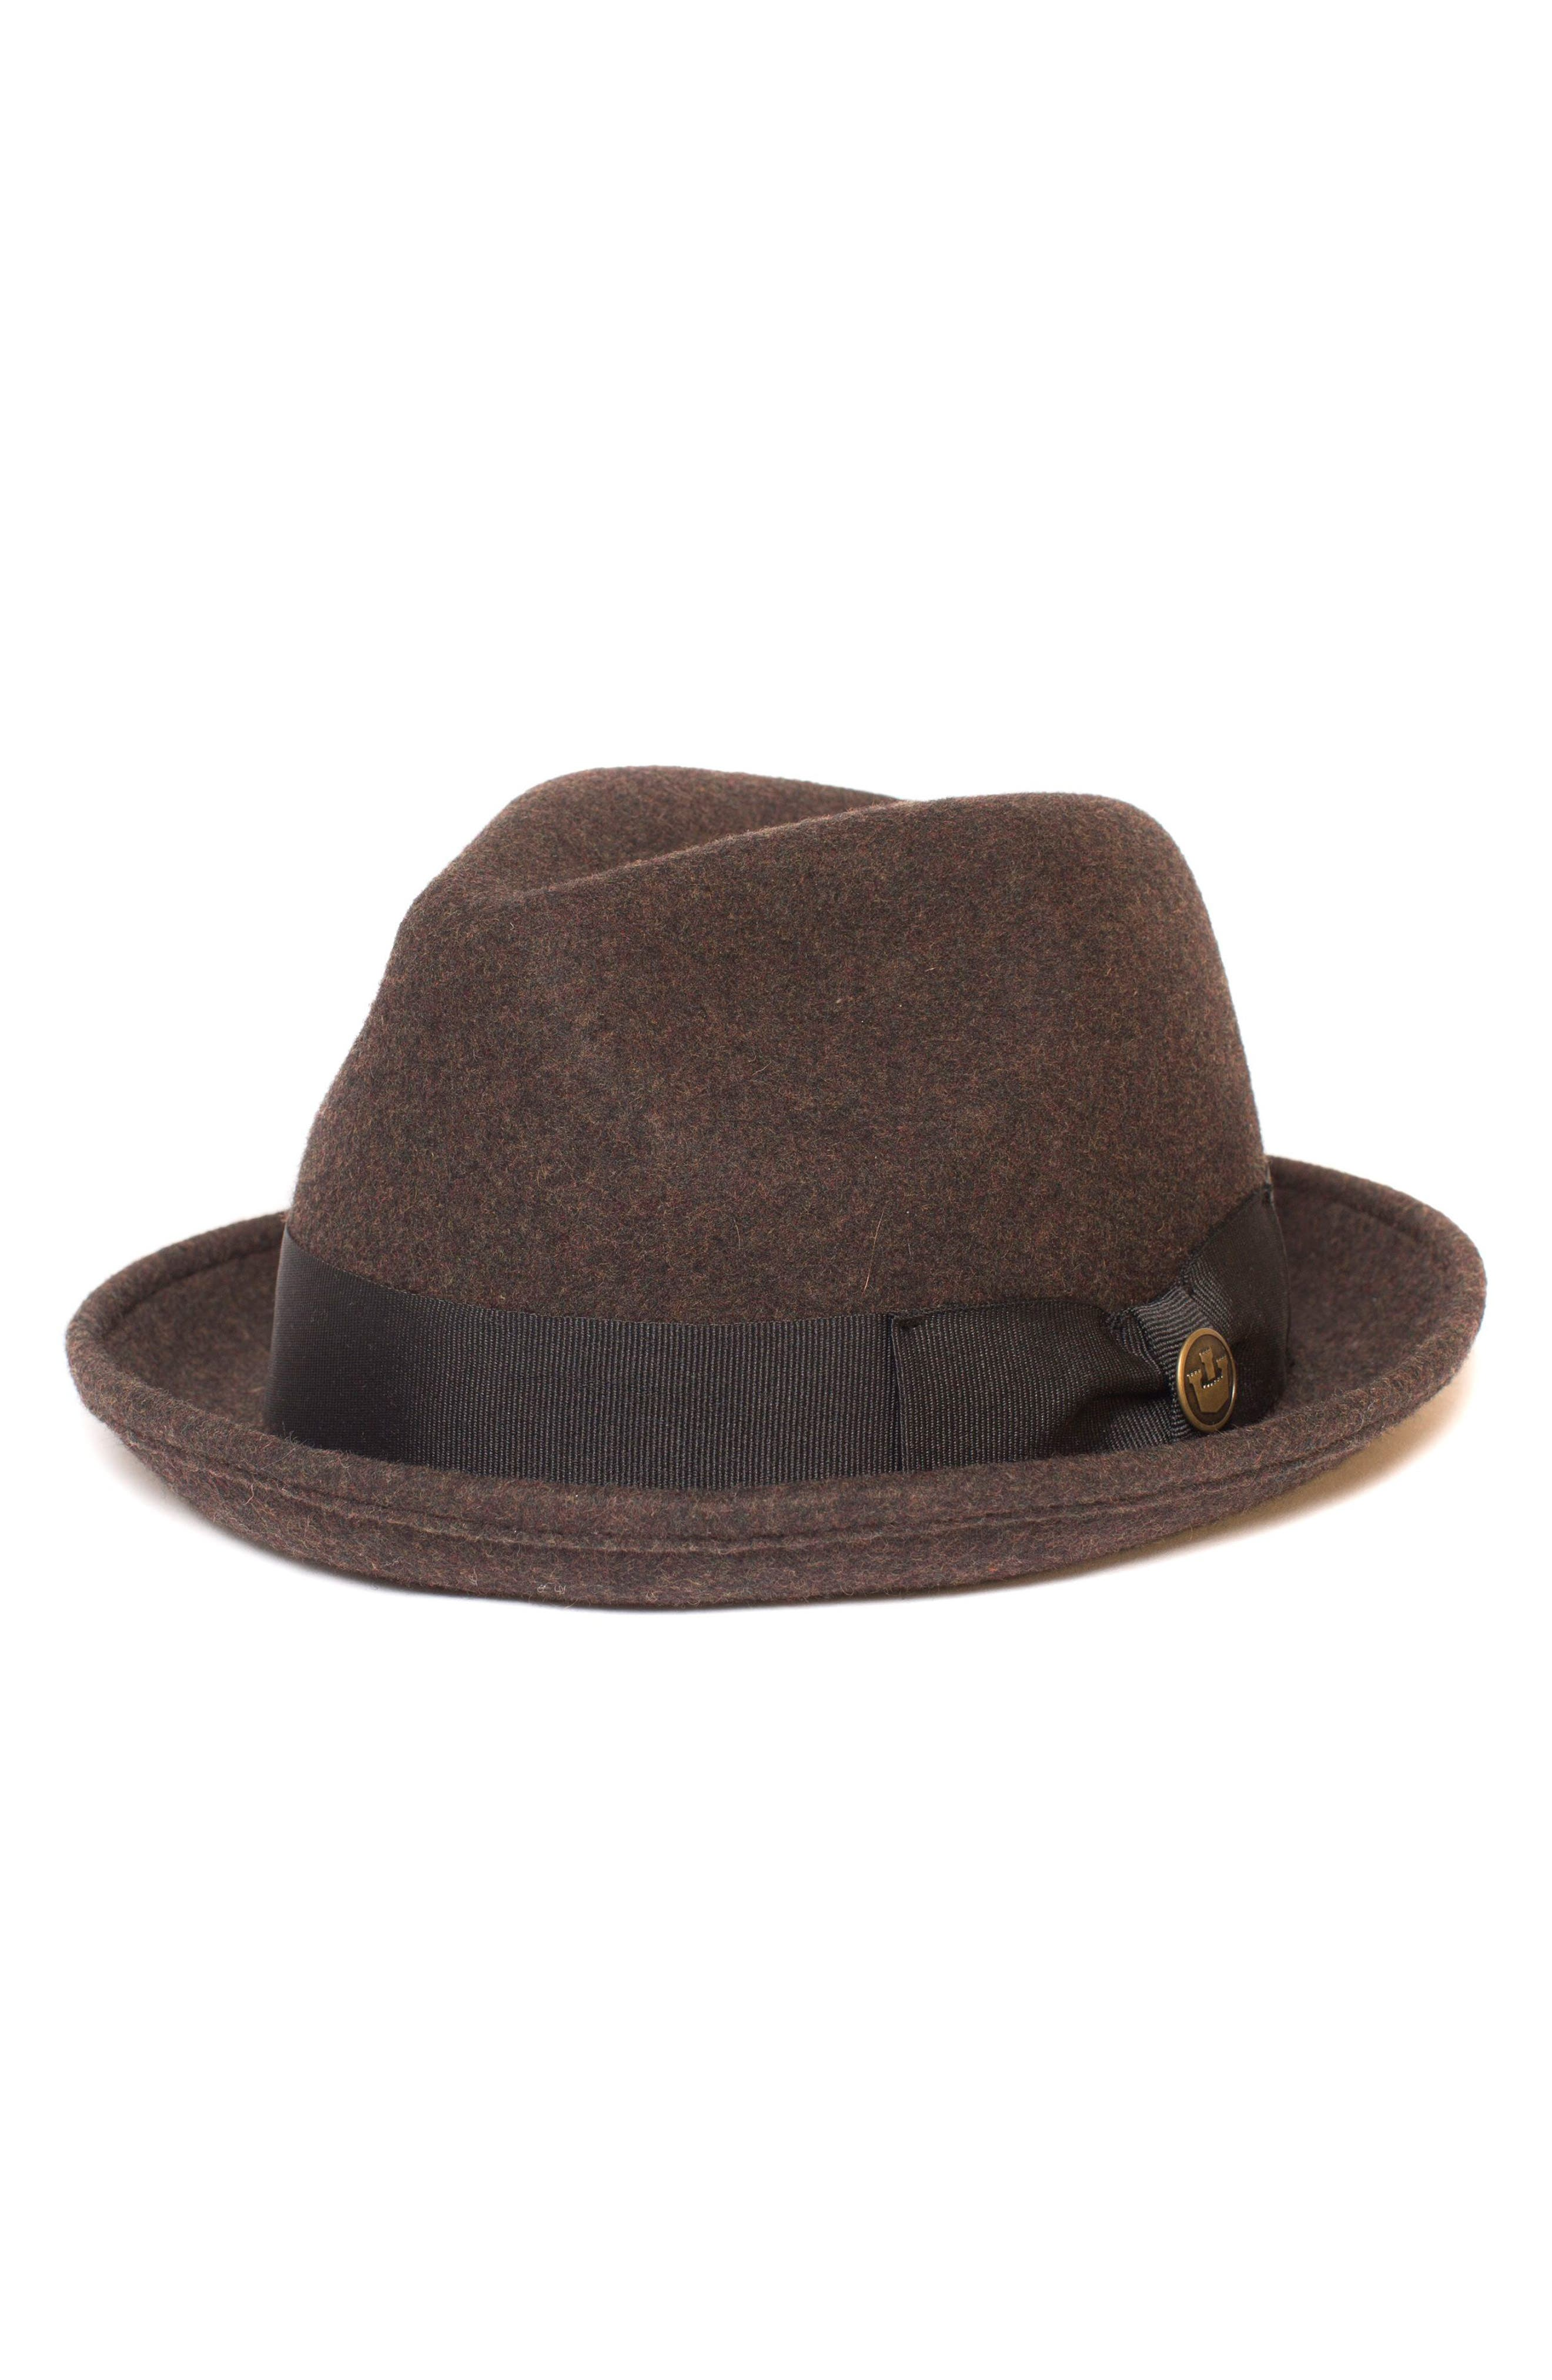 Goorin Bros. The Good Boy Felt Wool Fedora -